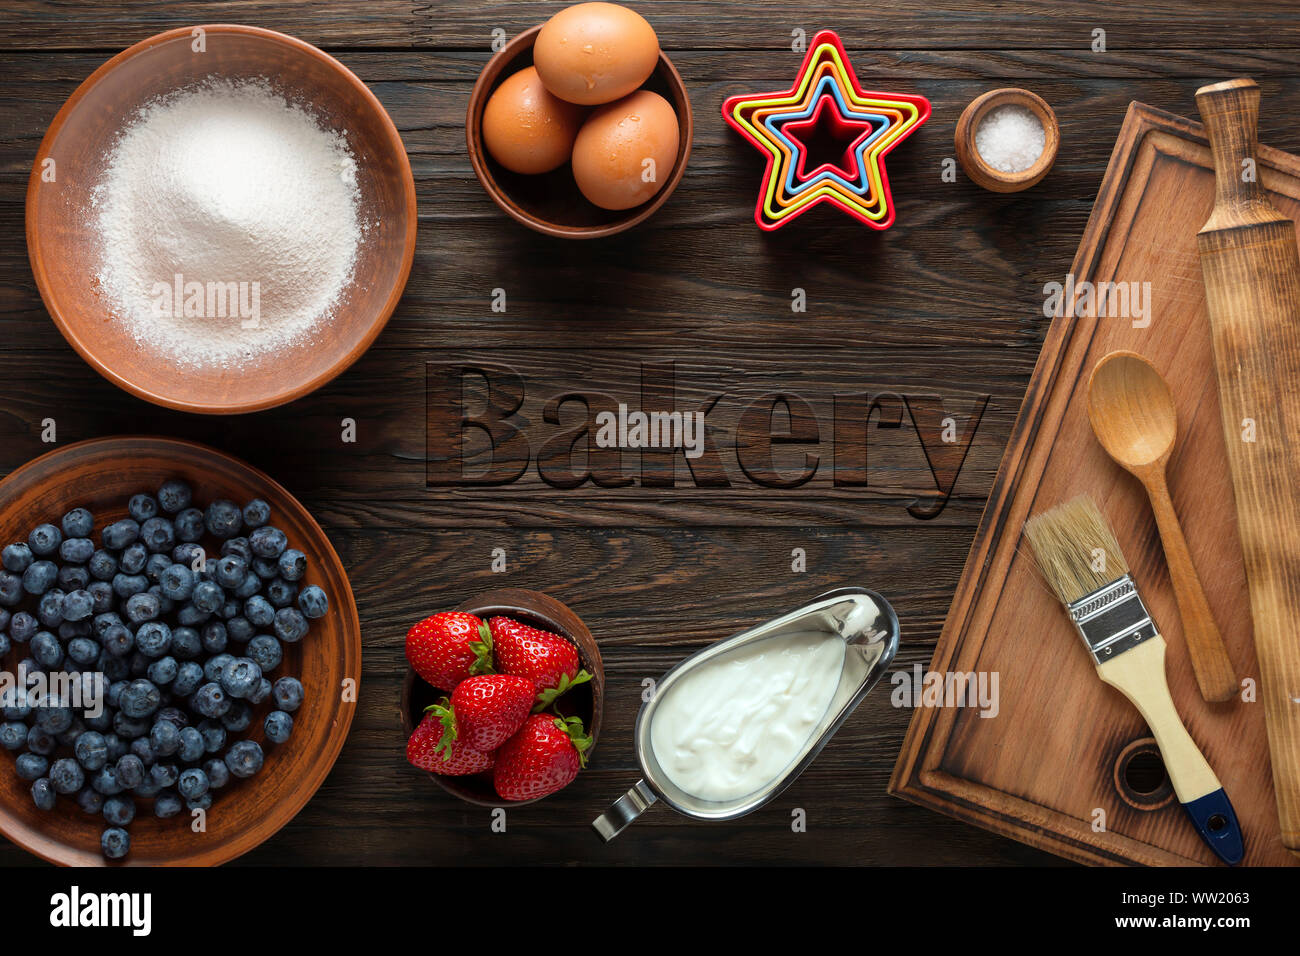 fotolia, ambrosia bakery, adobe stock, sweet, template, croissant, banner, yelp, gluten Stock Photo